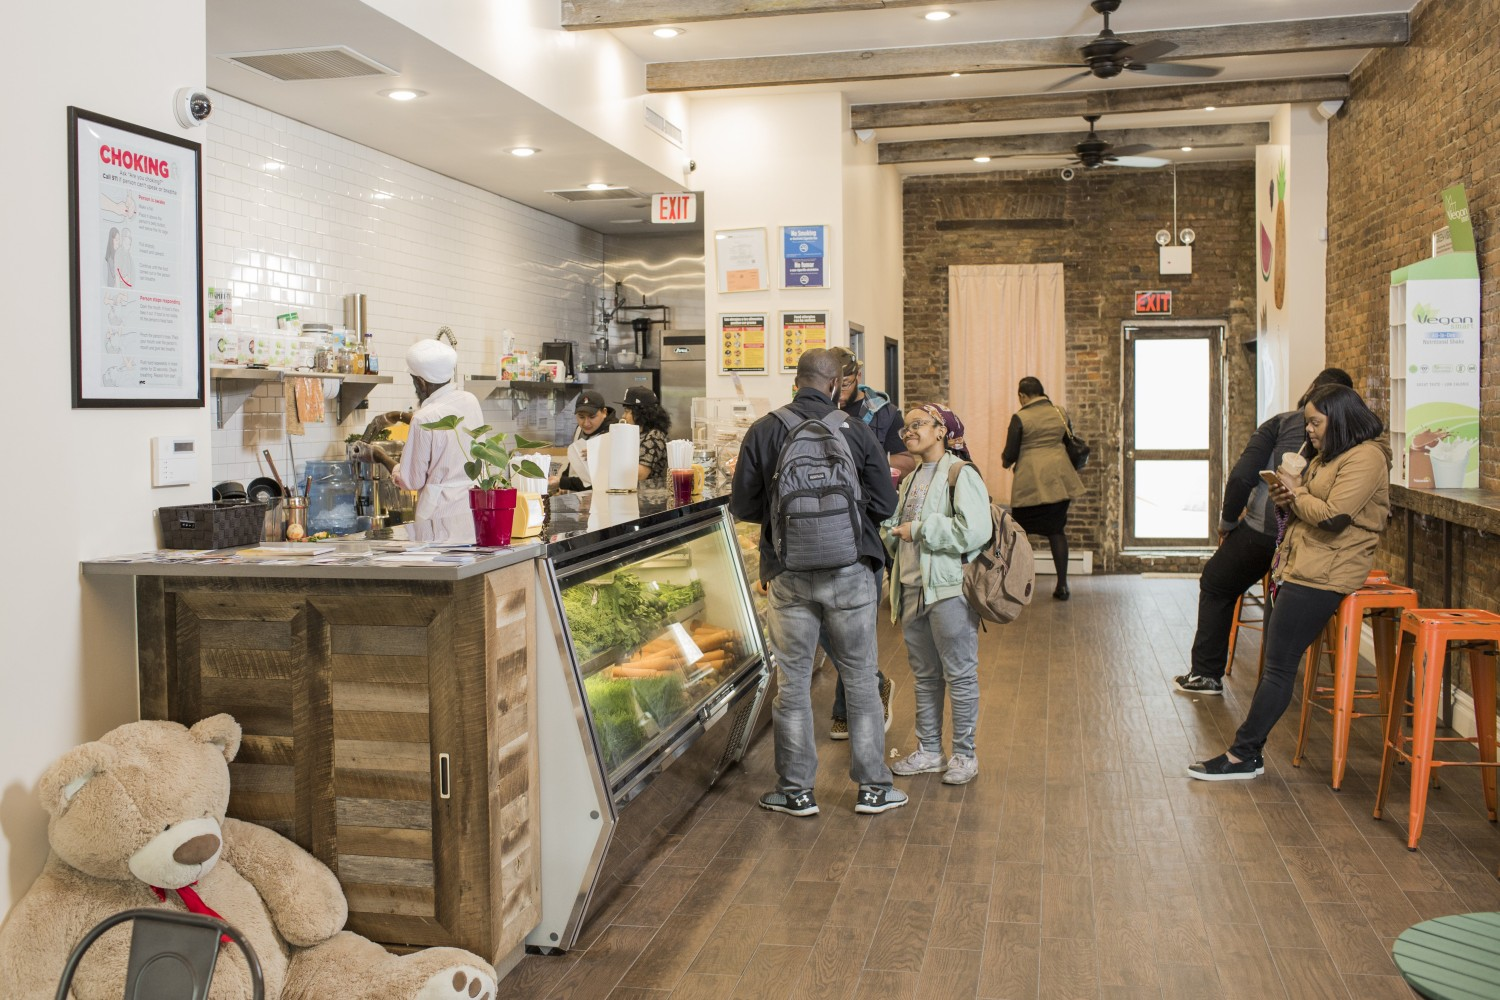 Image Radio Personality And DJ Angela Yee Recently Opened A Juice Bar Called Juices For